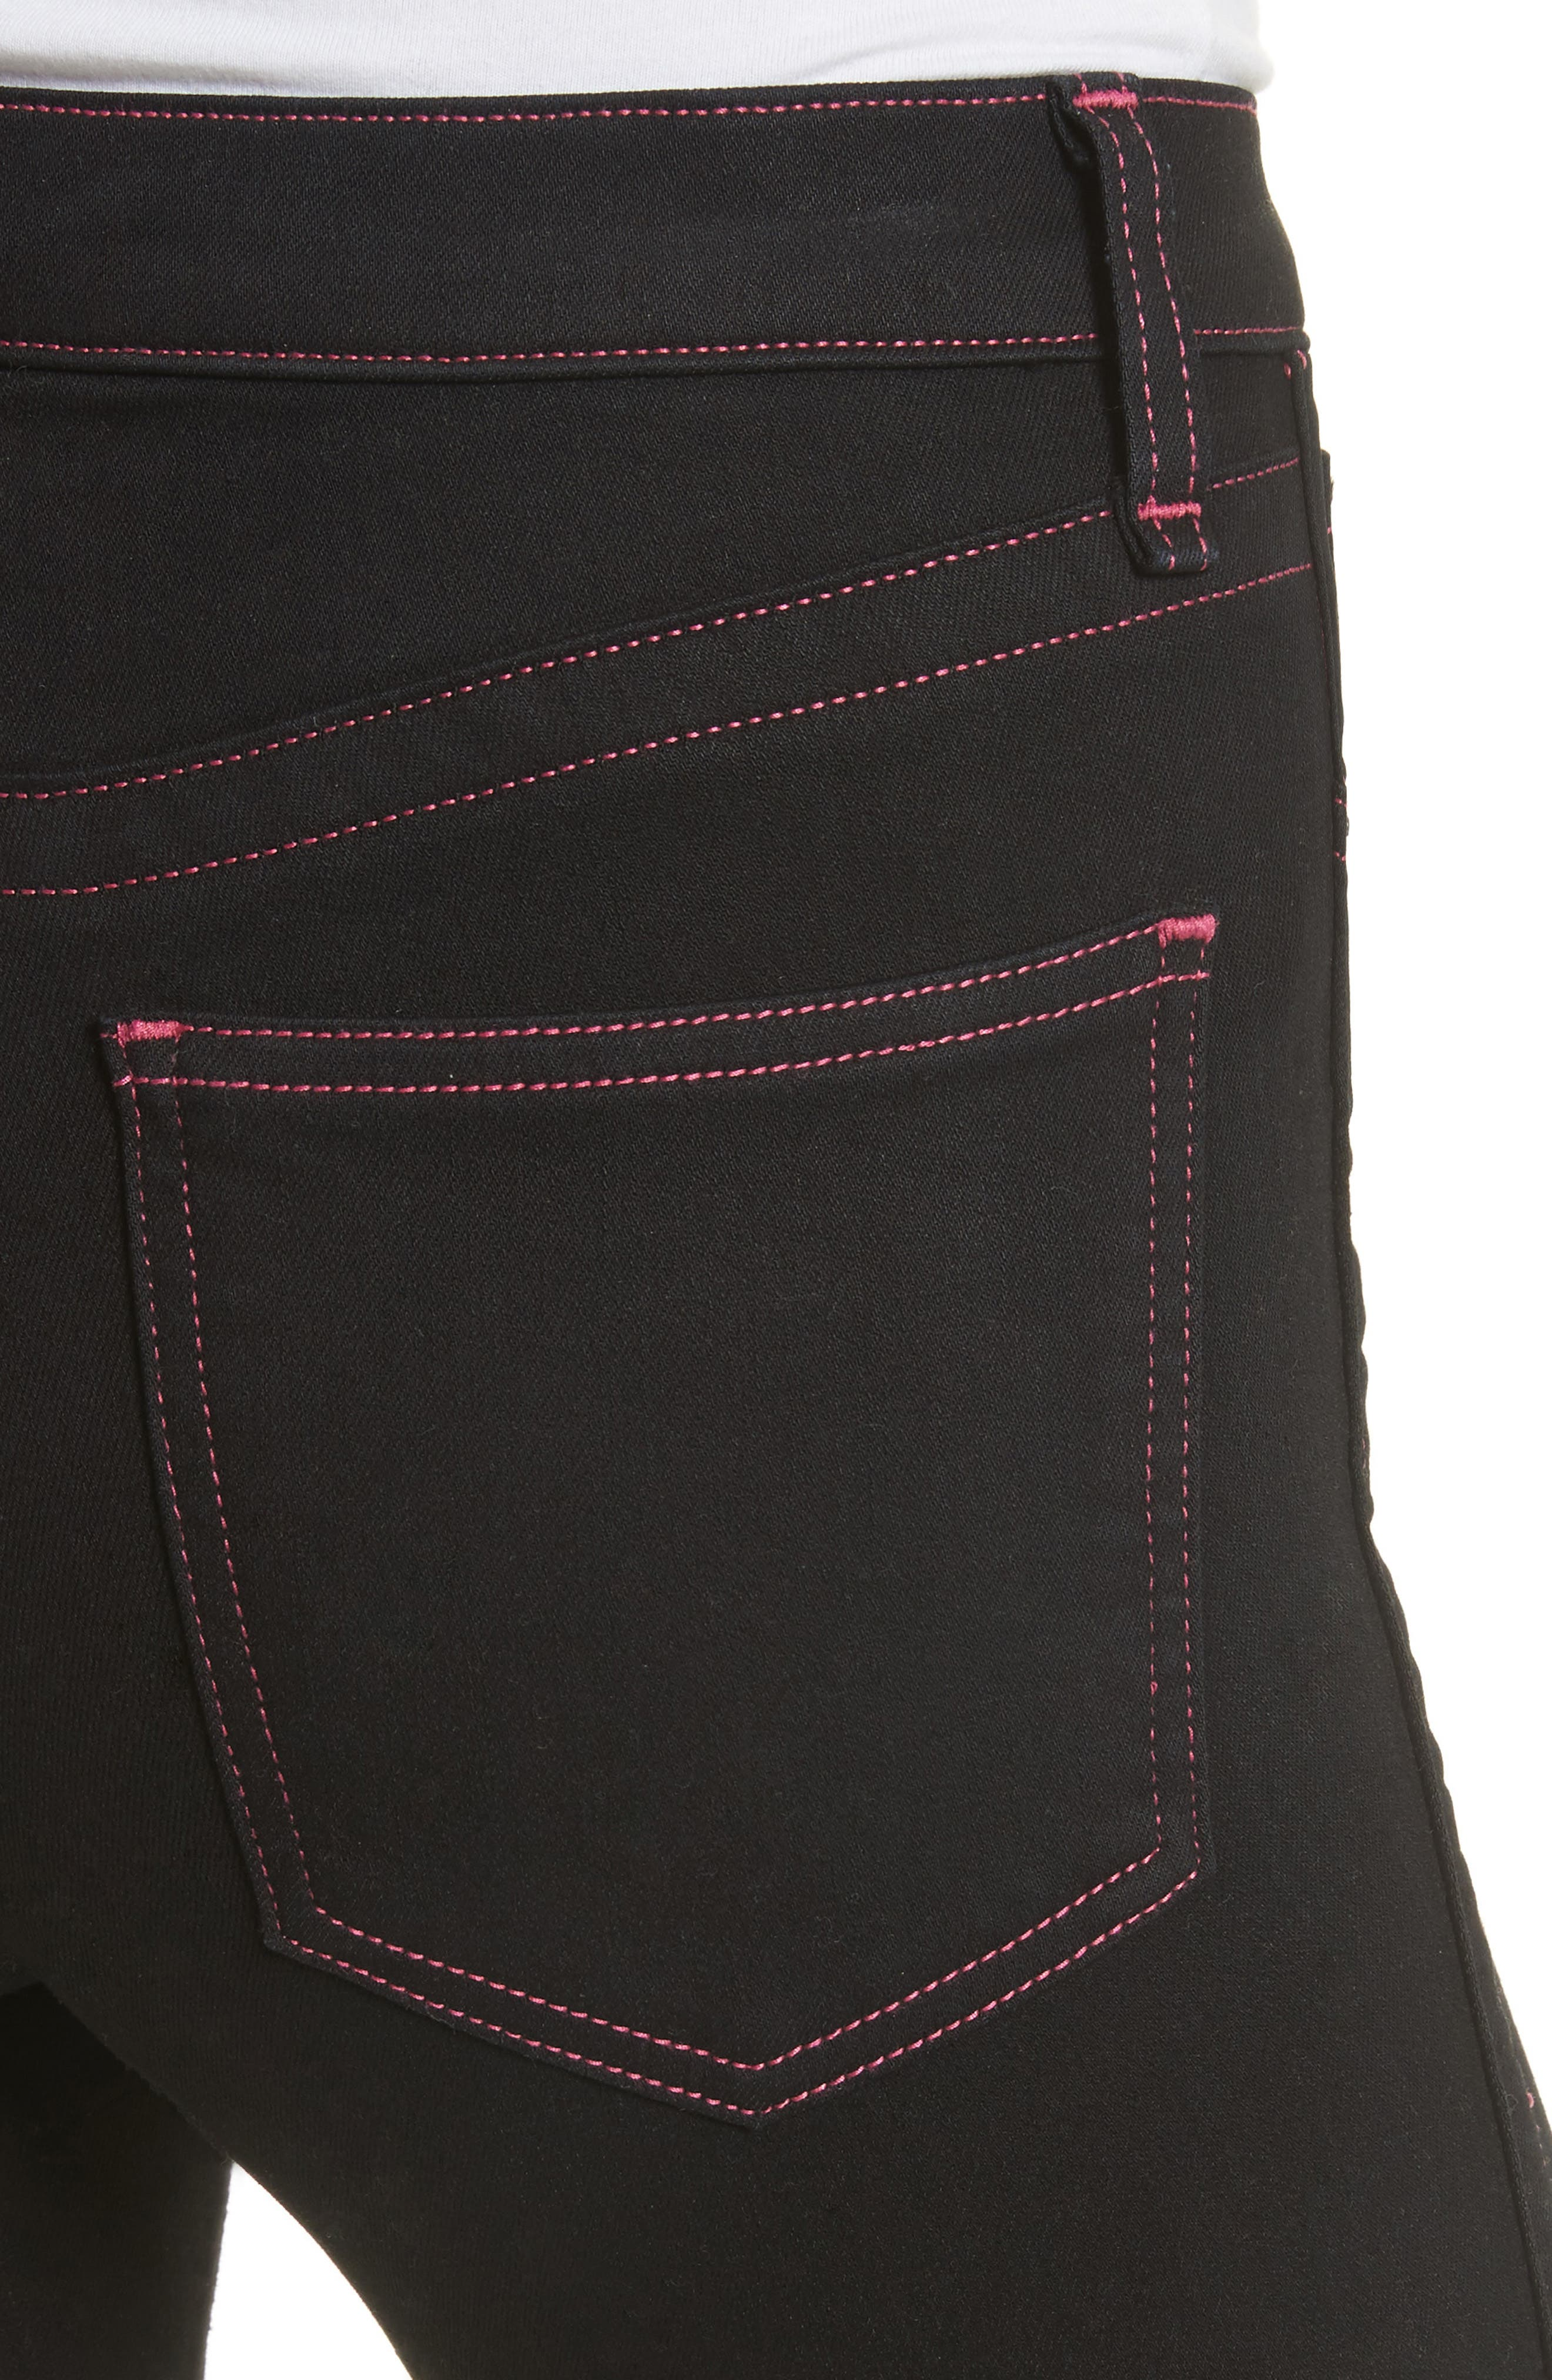 Miich High Rise Crop Skinny Jeans,                             Alternate thumbnail 4, color,                             Black Stitch